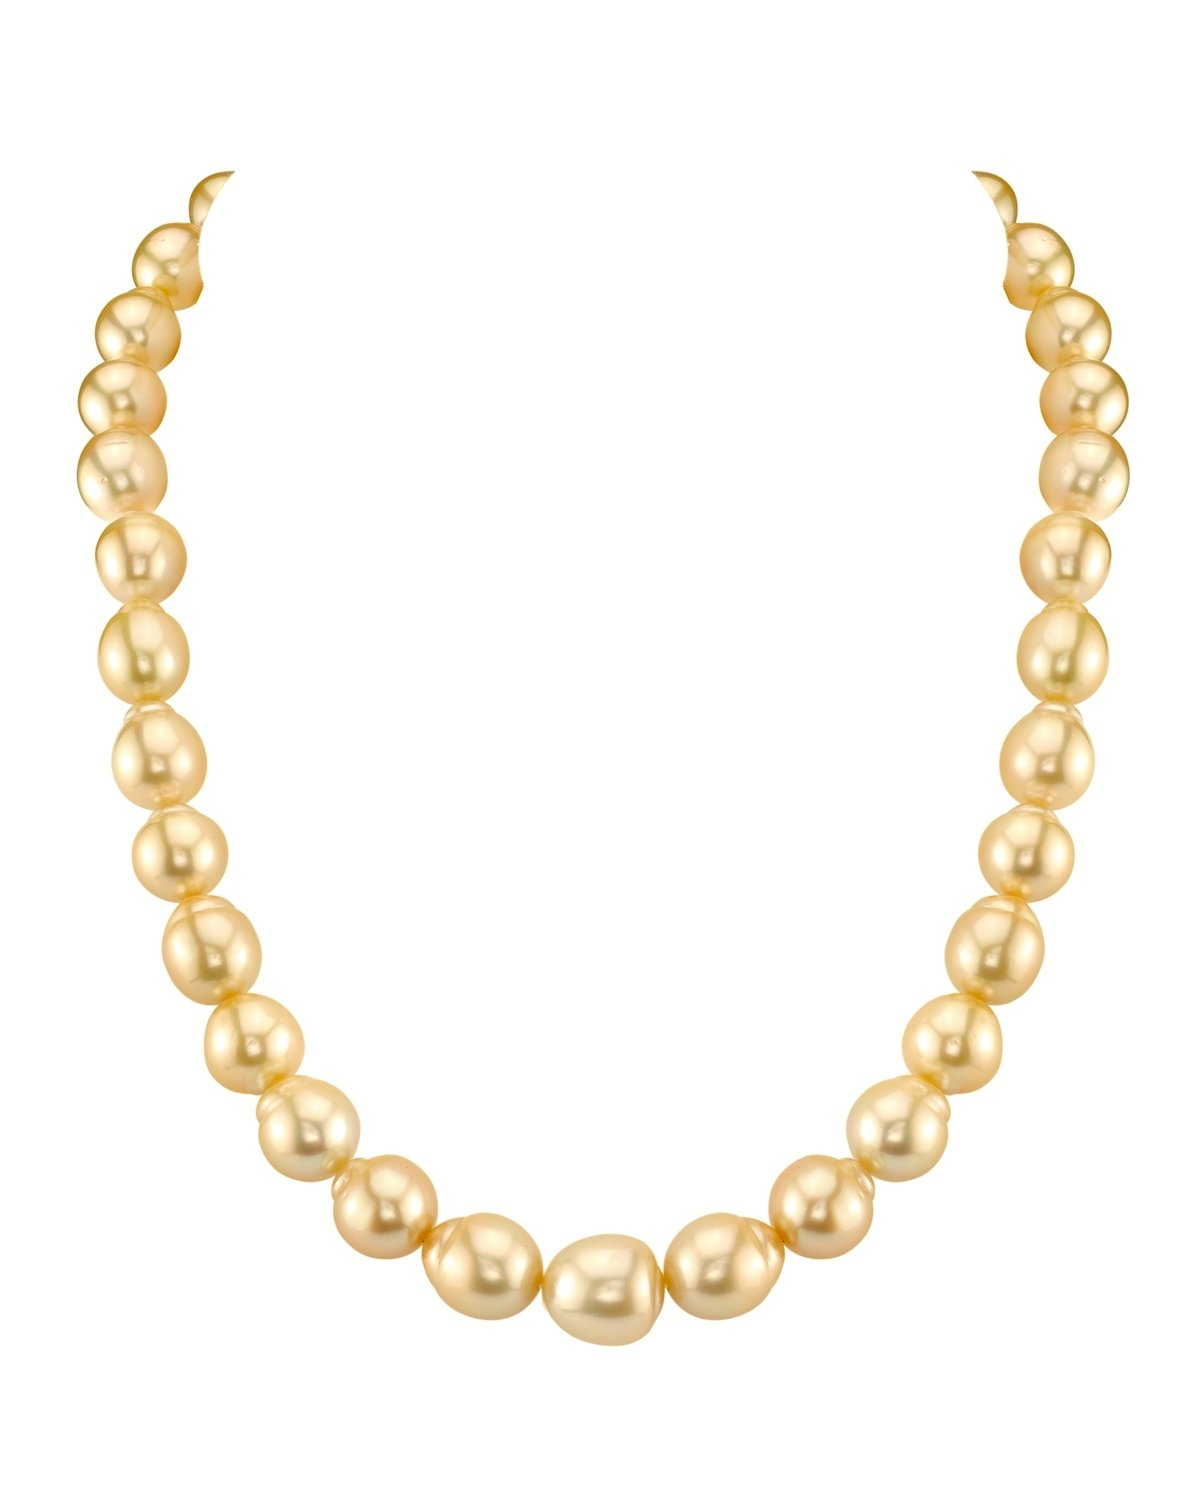 10-12mm Baroque Shaped Golden South Sea Pearl Necklace